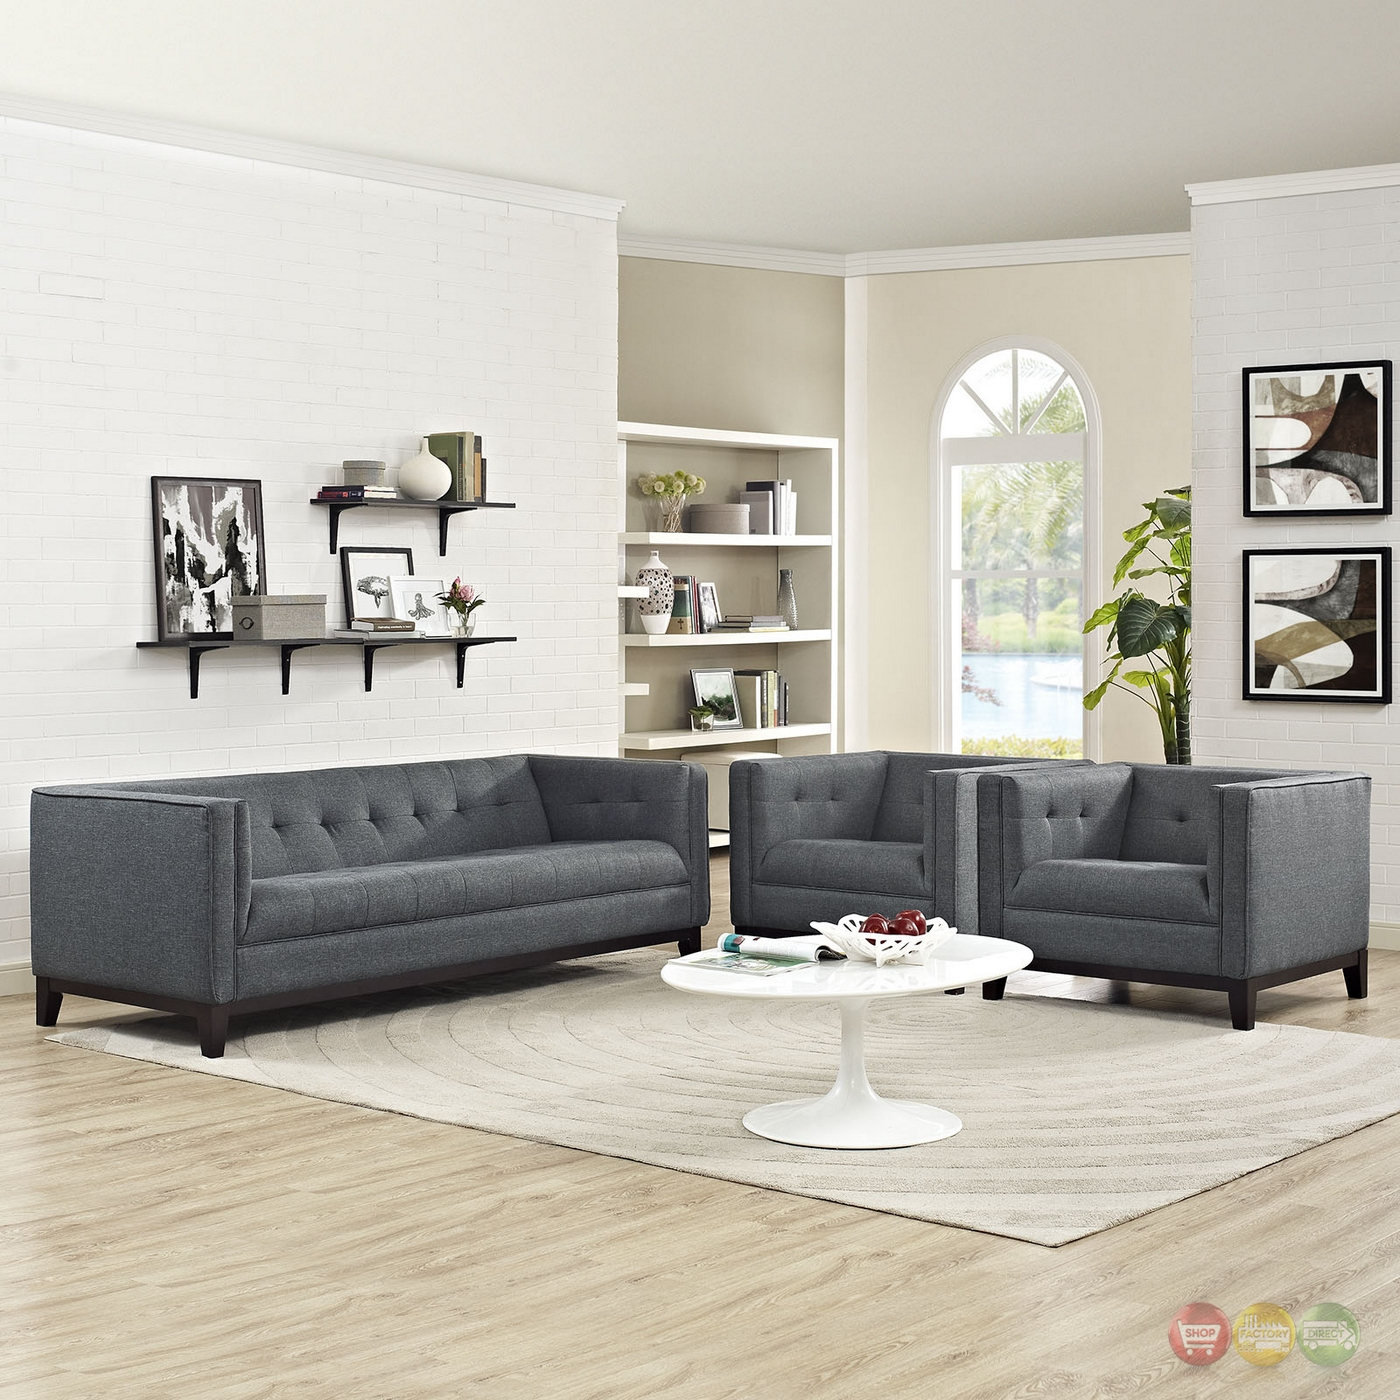 Mid-Century Modern Serve 3-pc Sofa & Armchairs Living Room Set, Gray